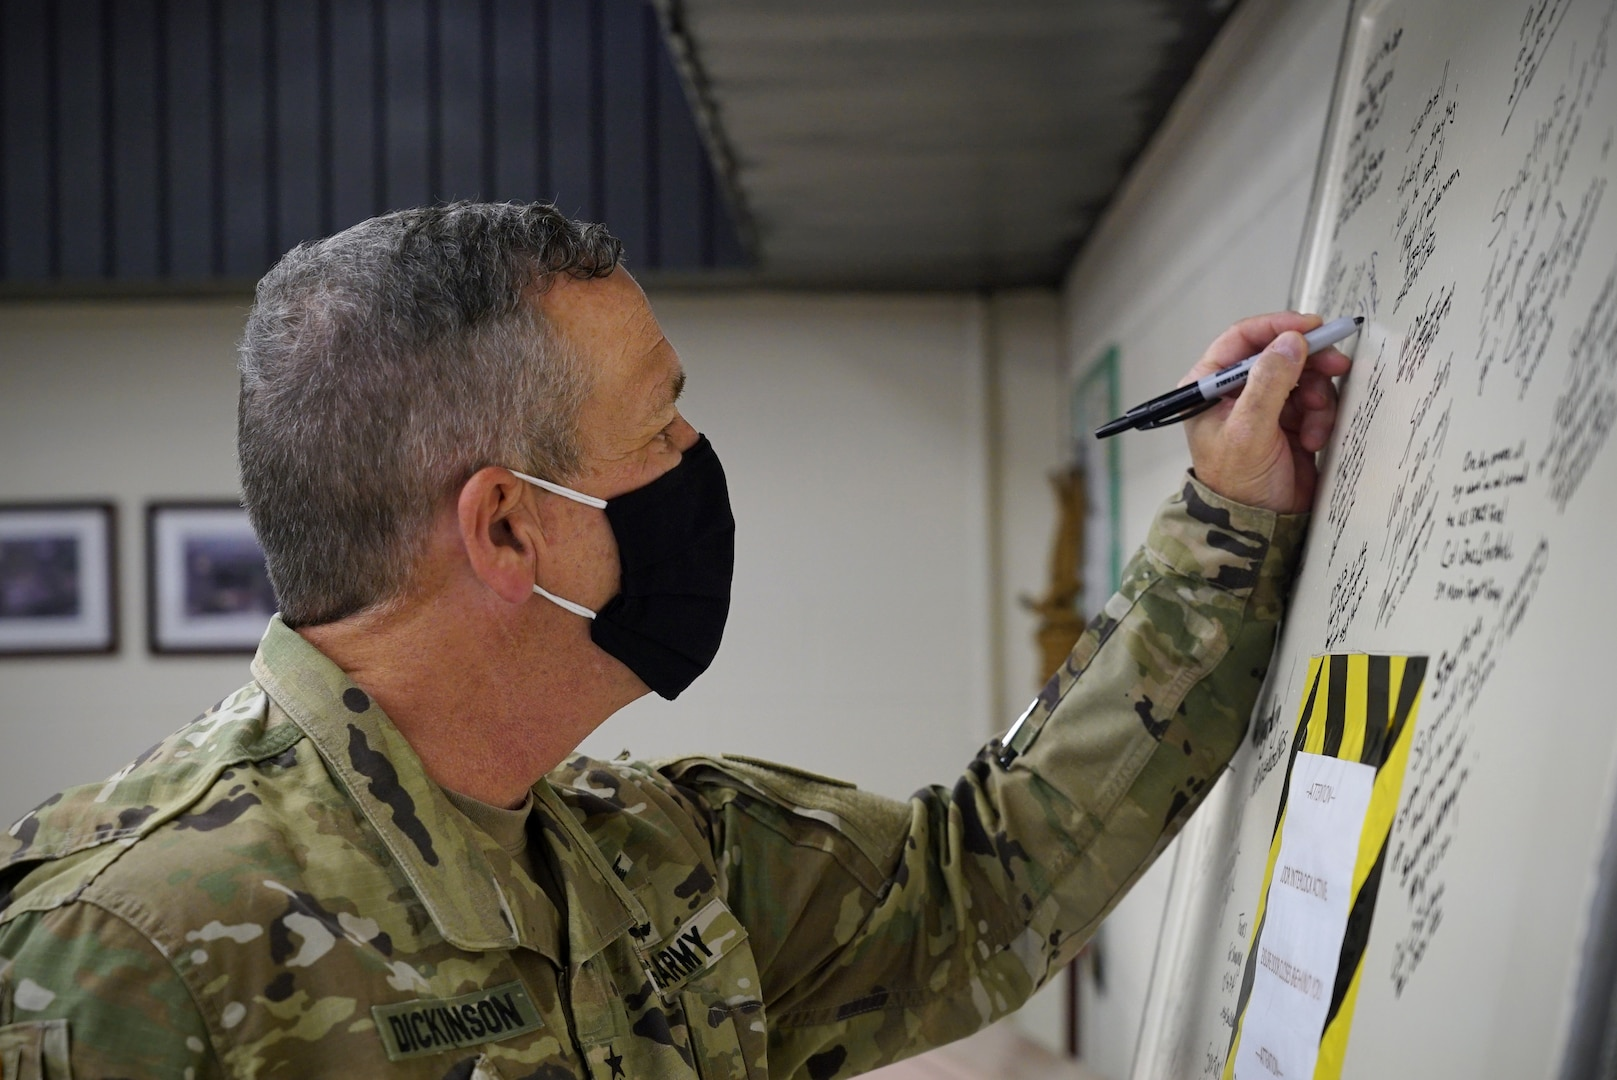 A man in military uniform uses his left hand to leave his signature in permanent marker on a door leaning up against the wall in front of him.